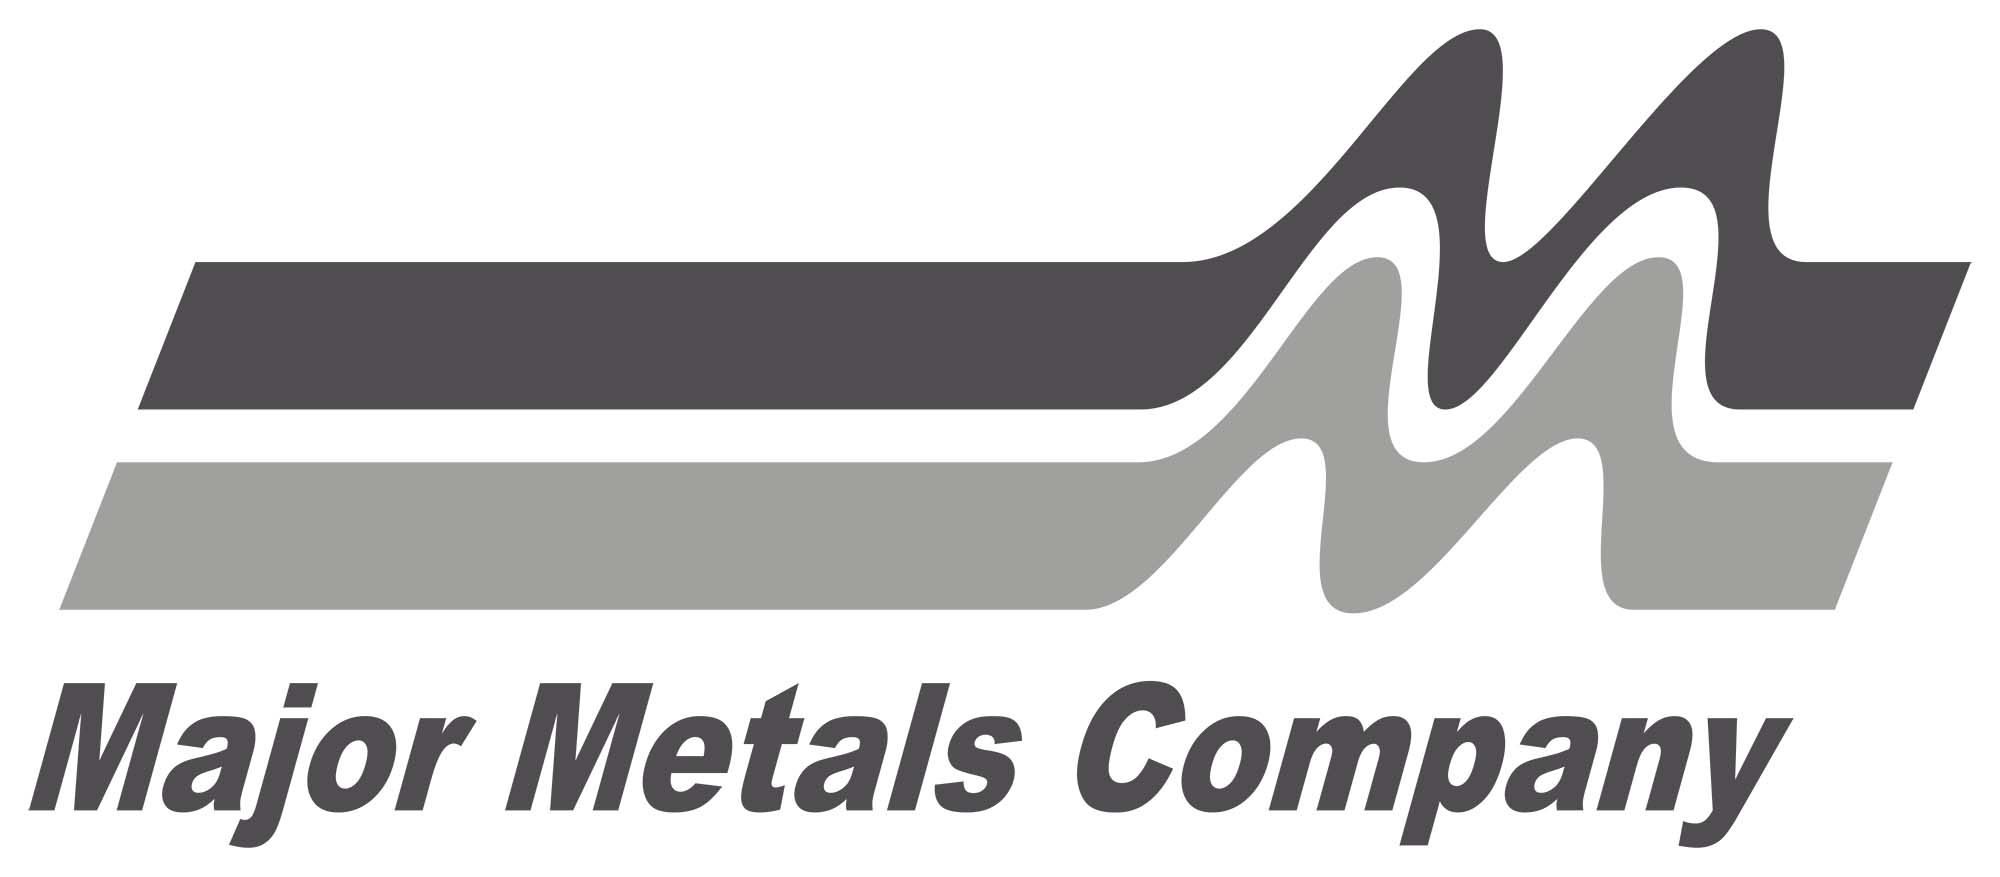 Major Metals Company